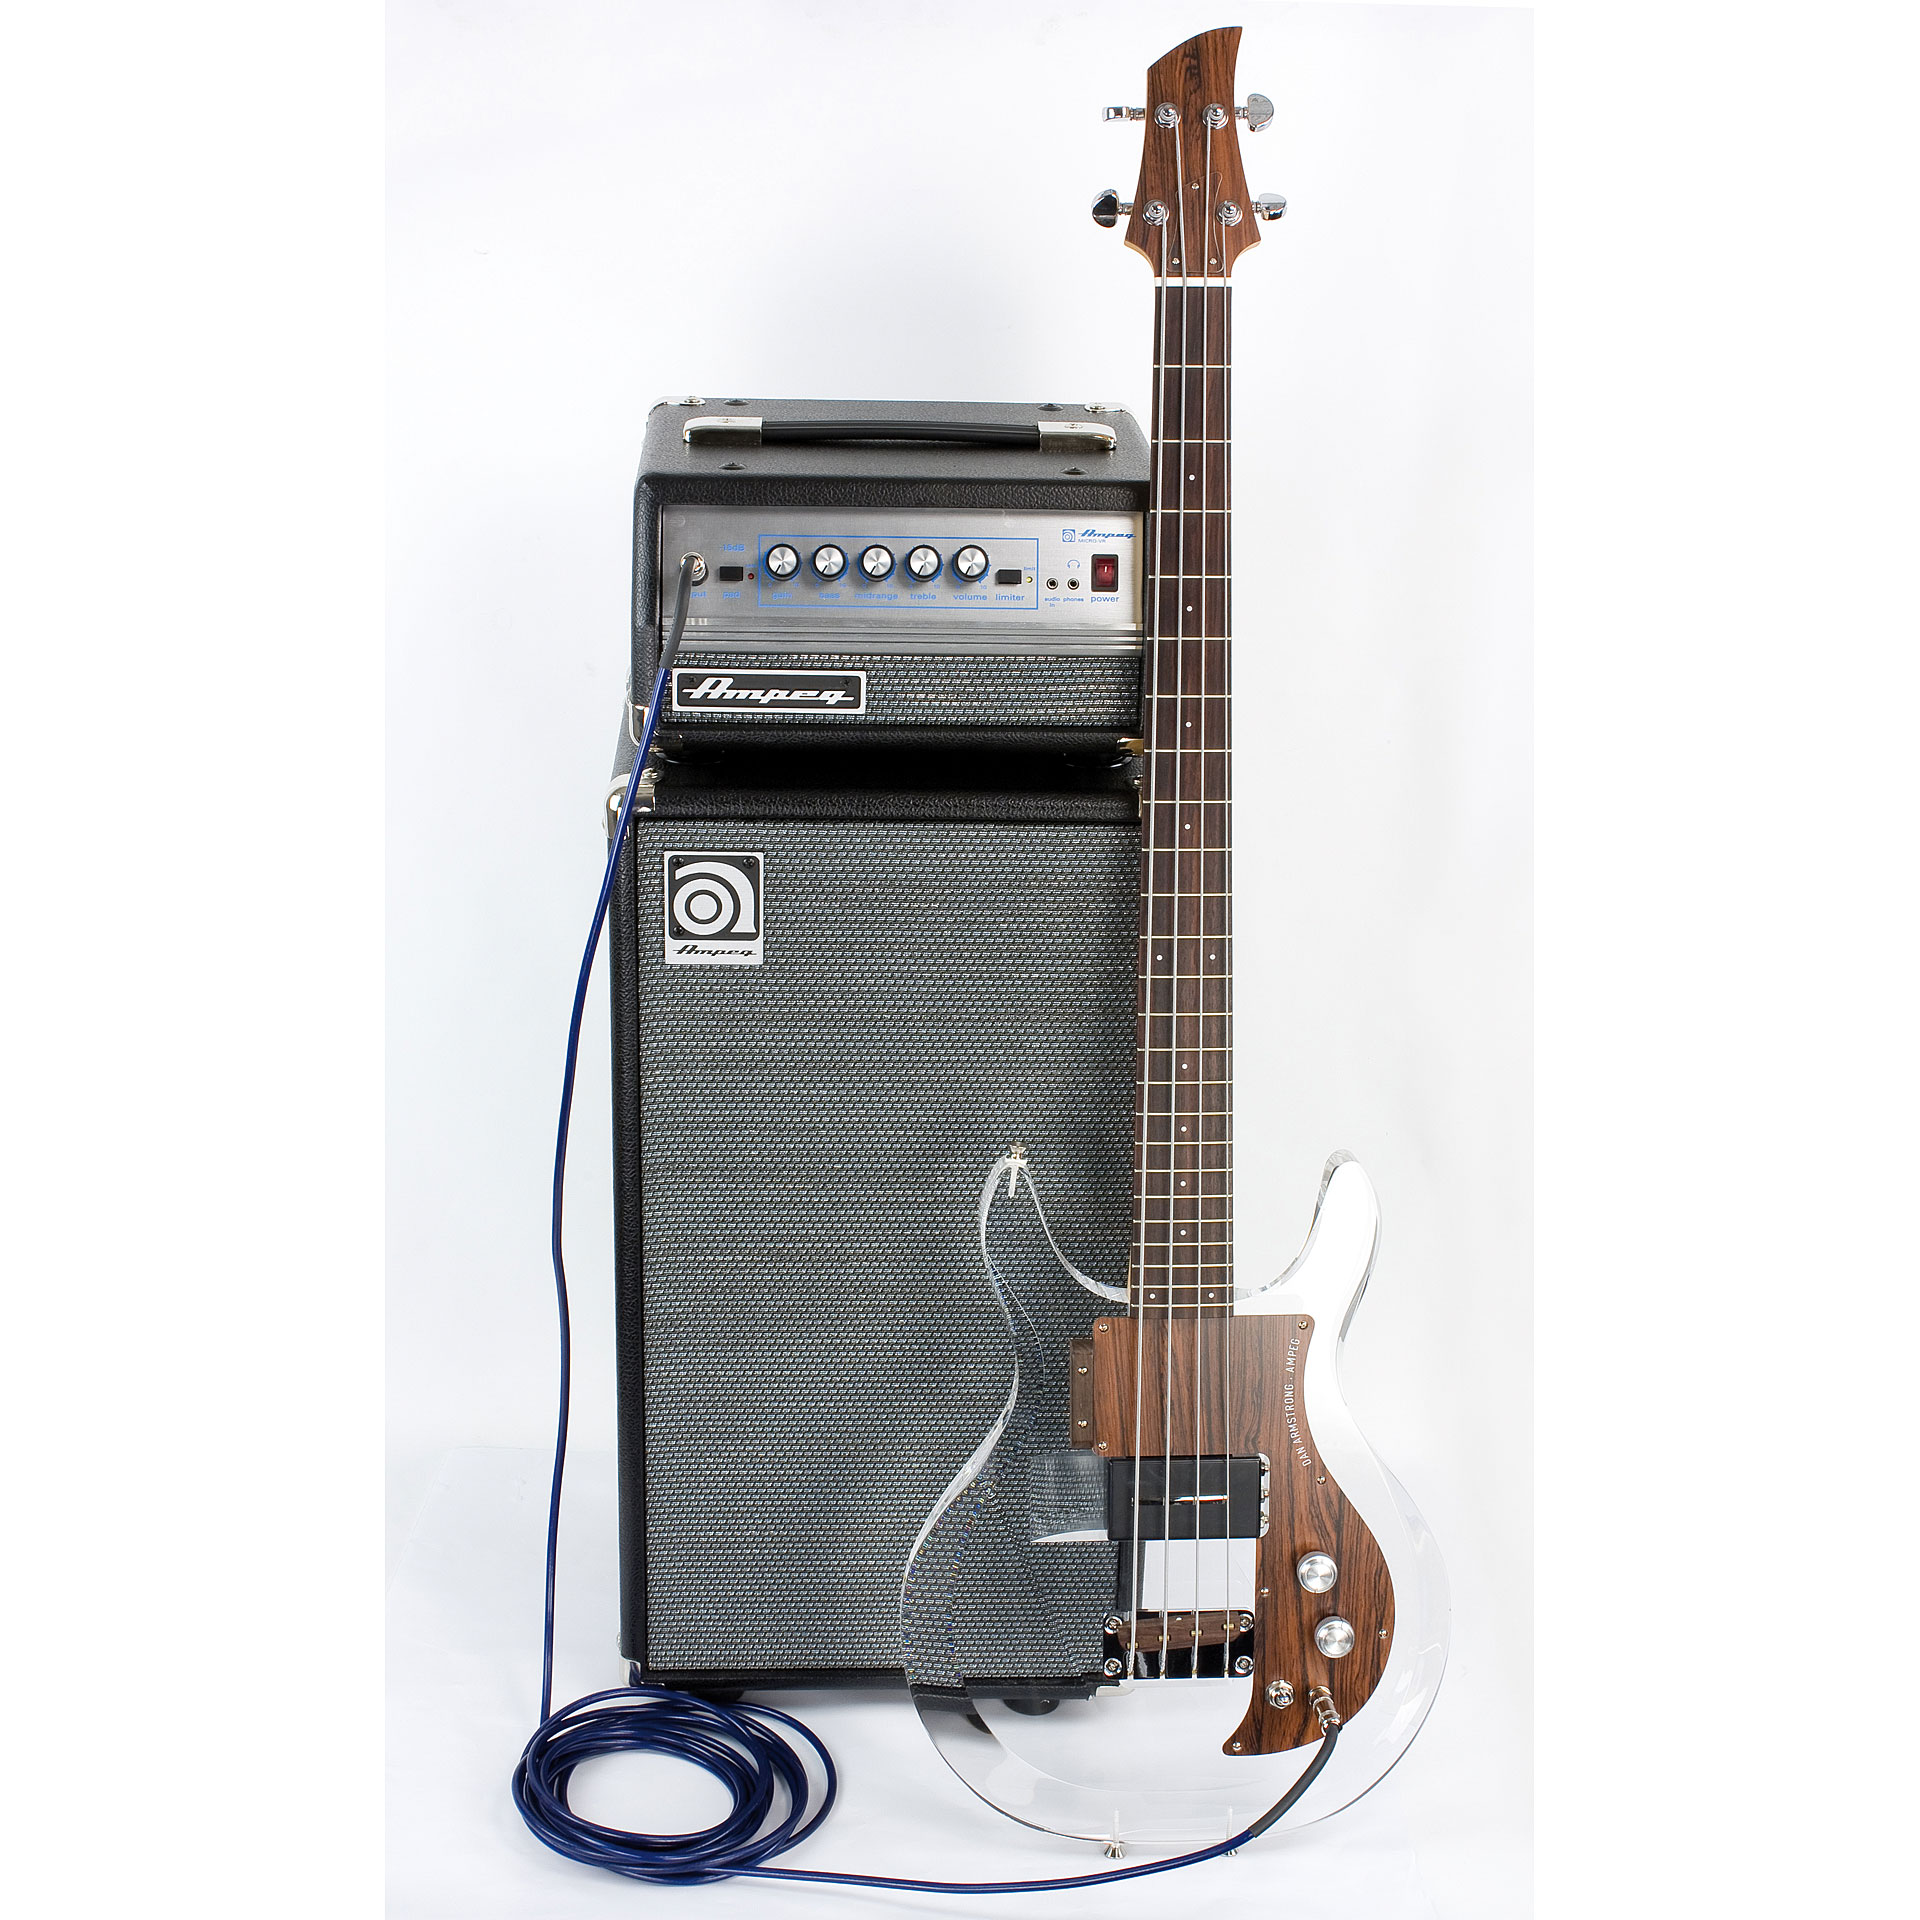 Ampeg classic micro vr stack bass stack for Classic house bass